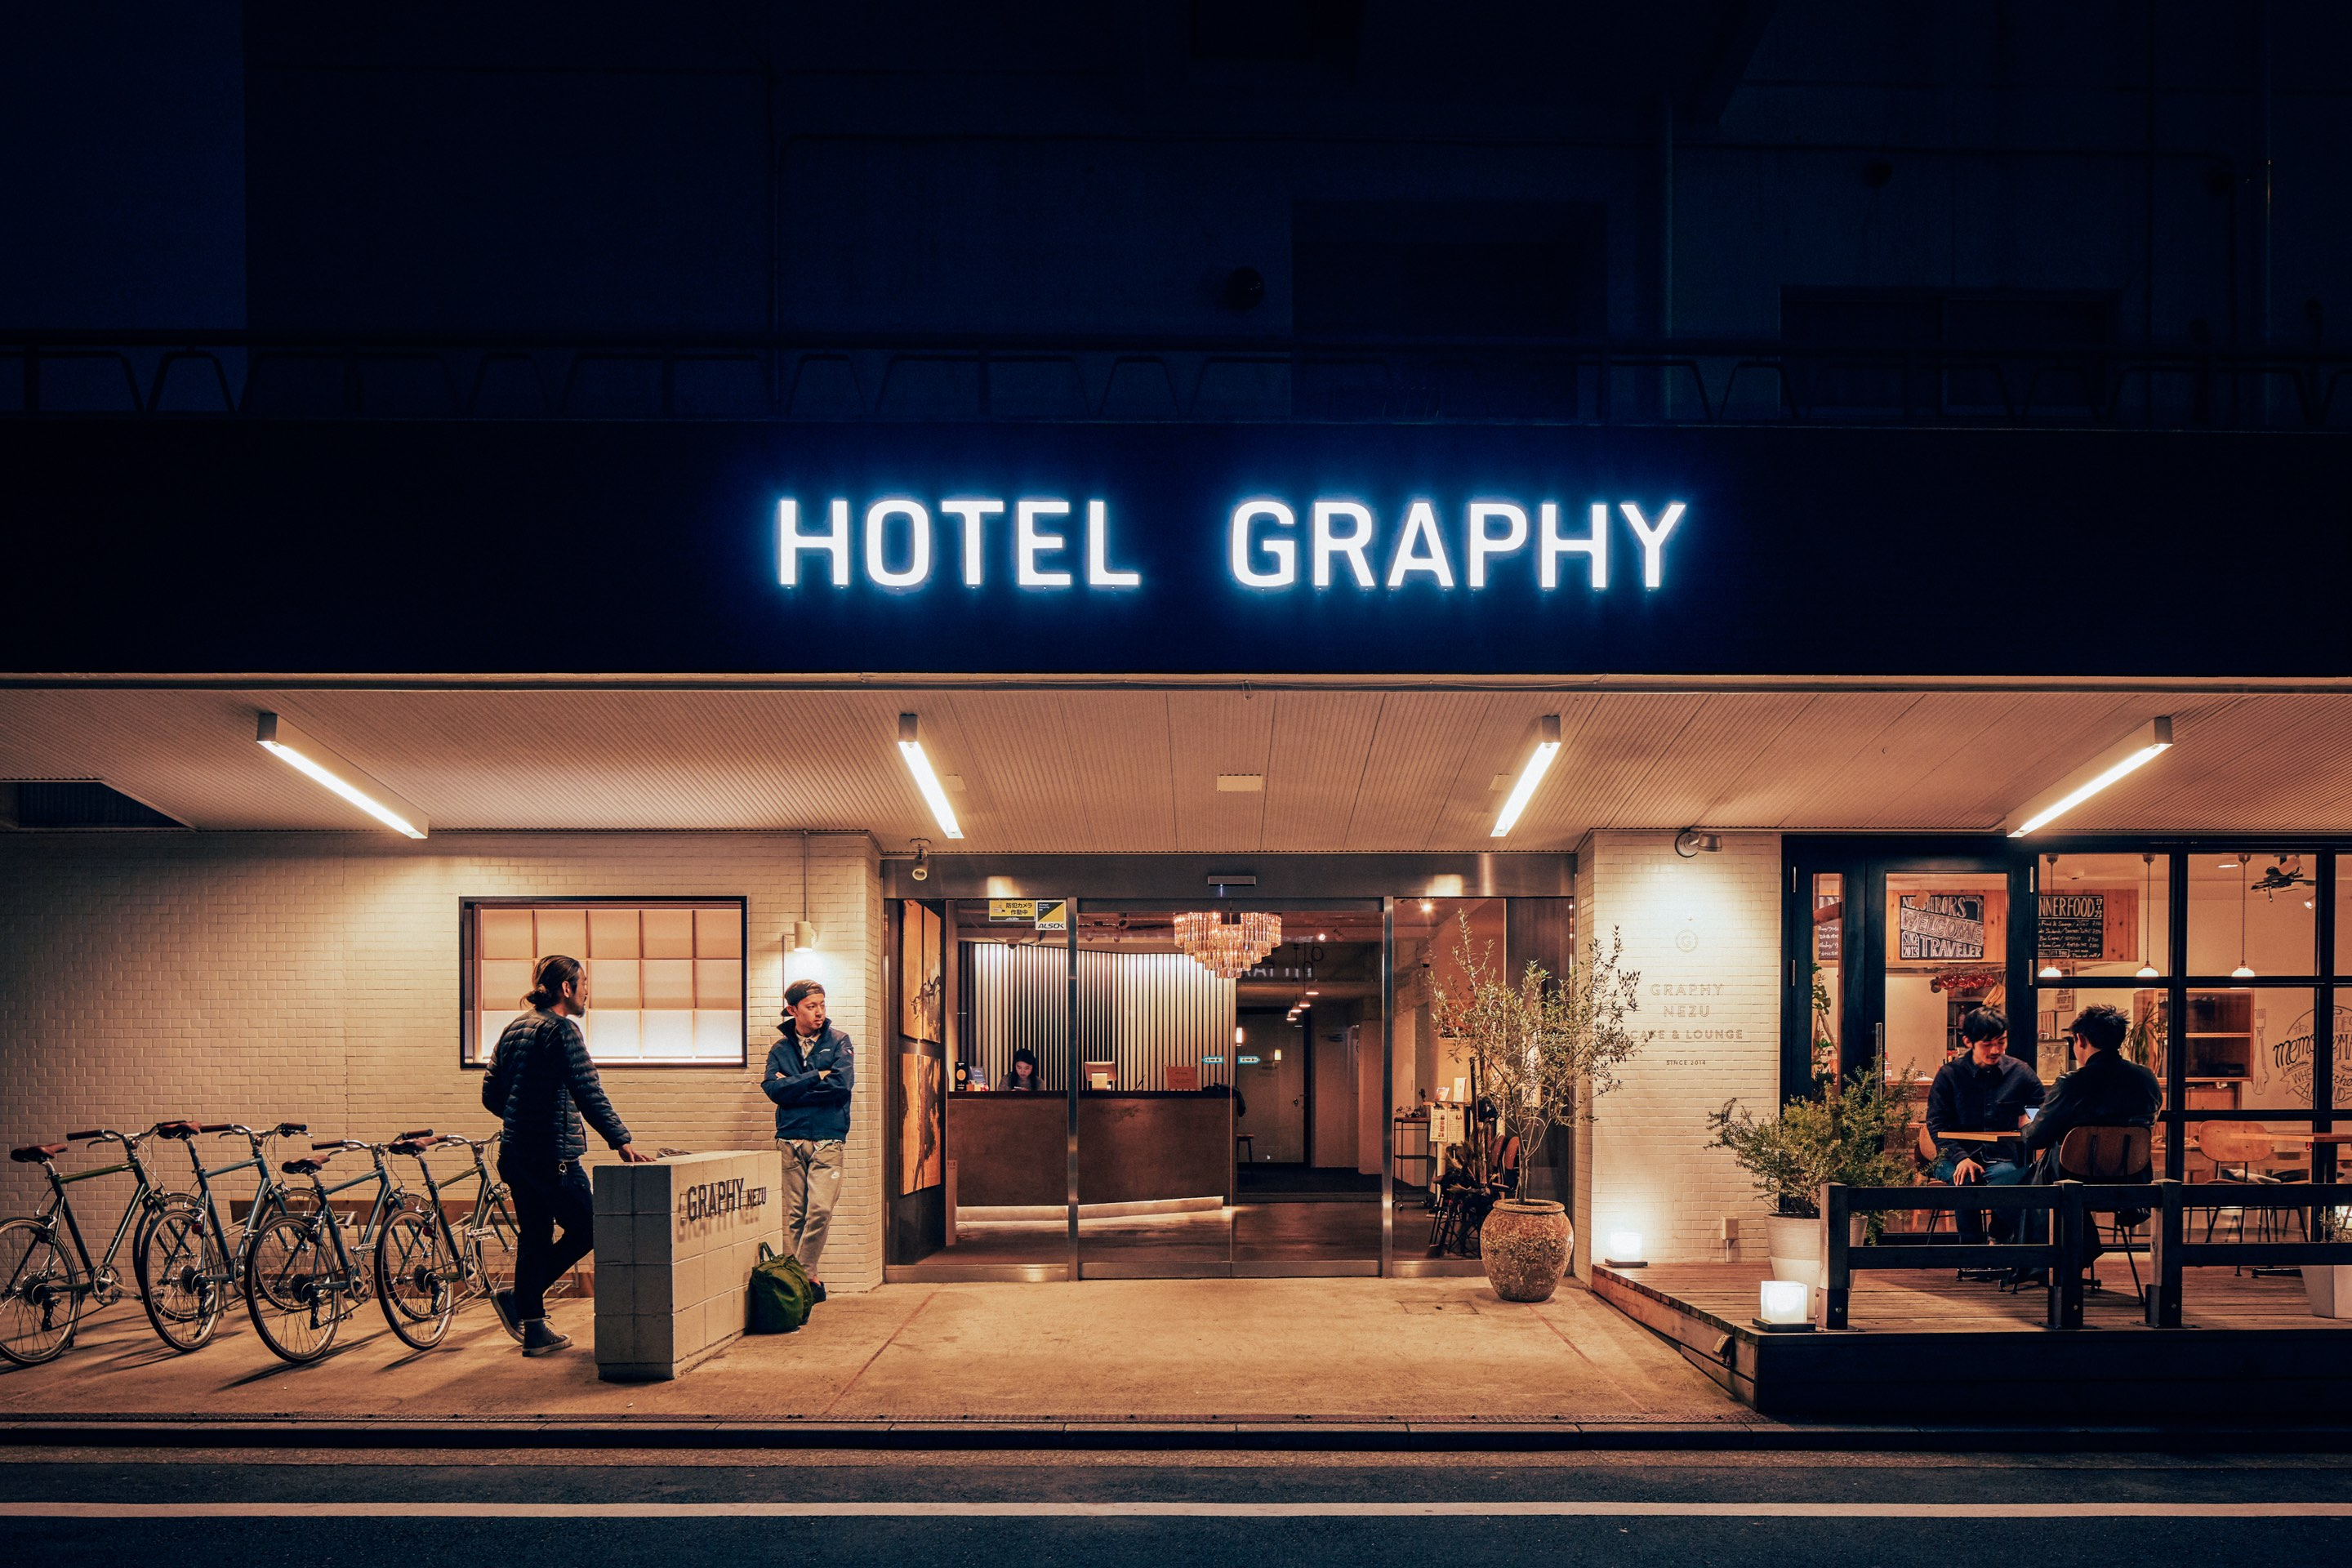 Hotel Graphy Nezu exterior at night